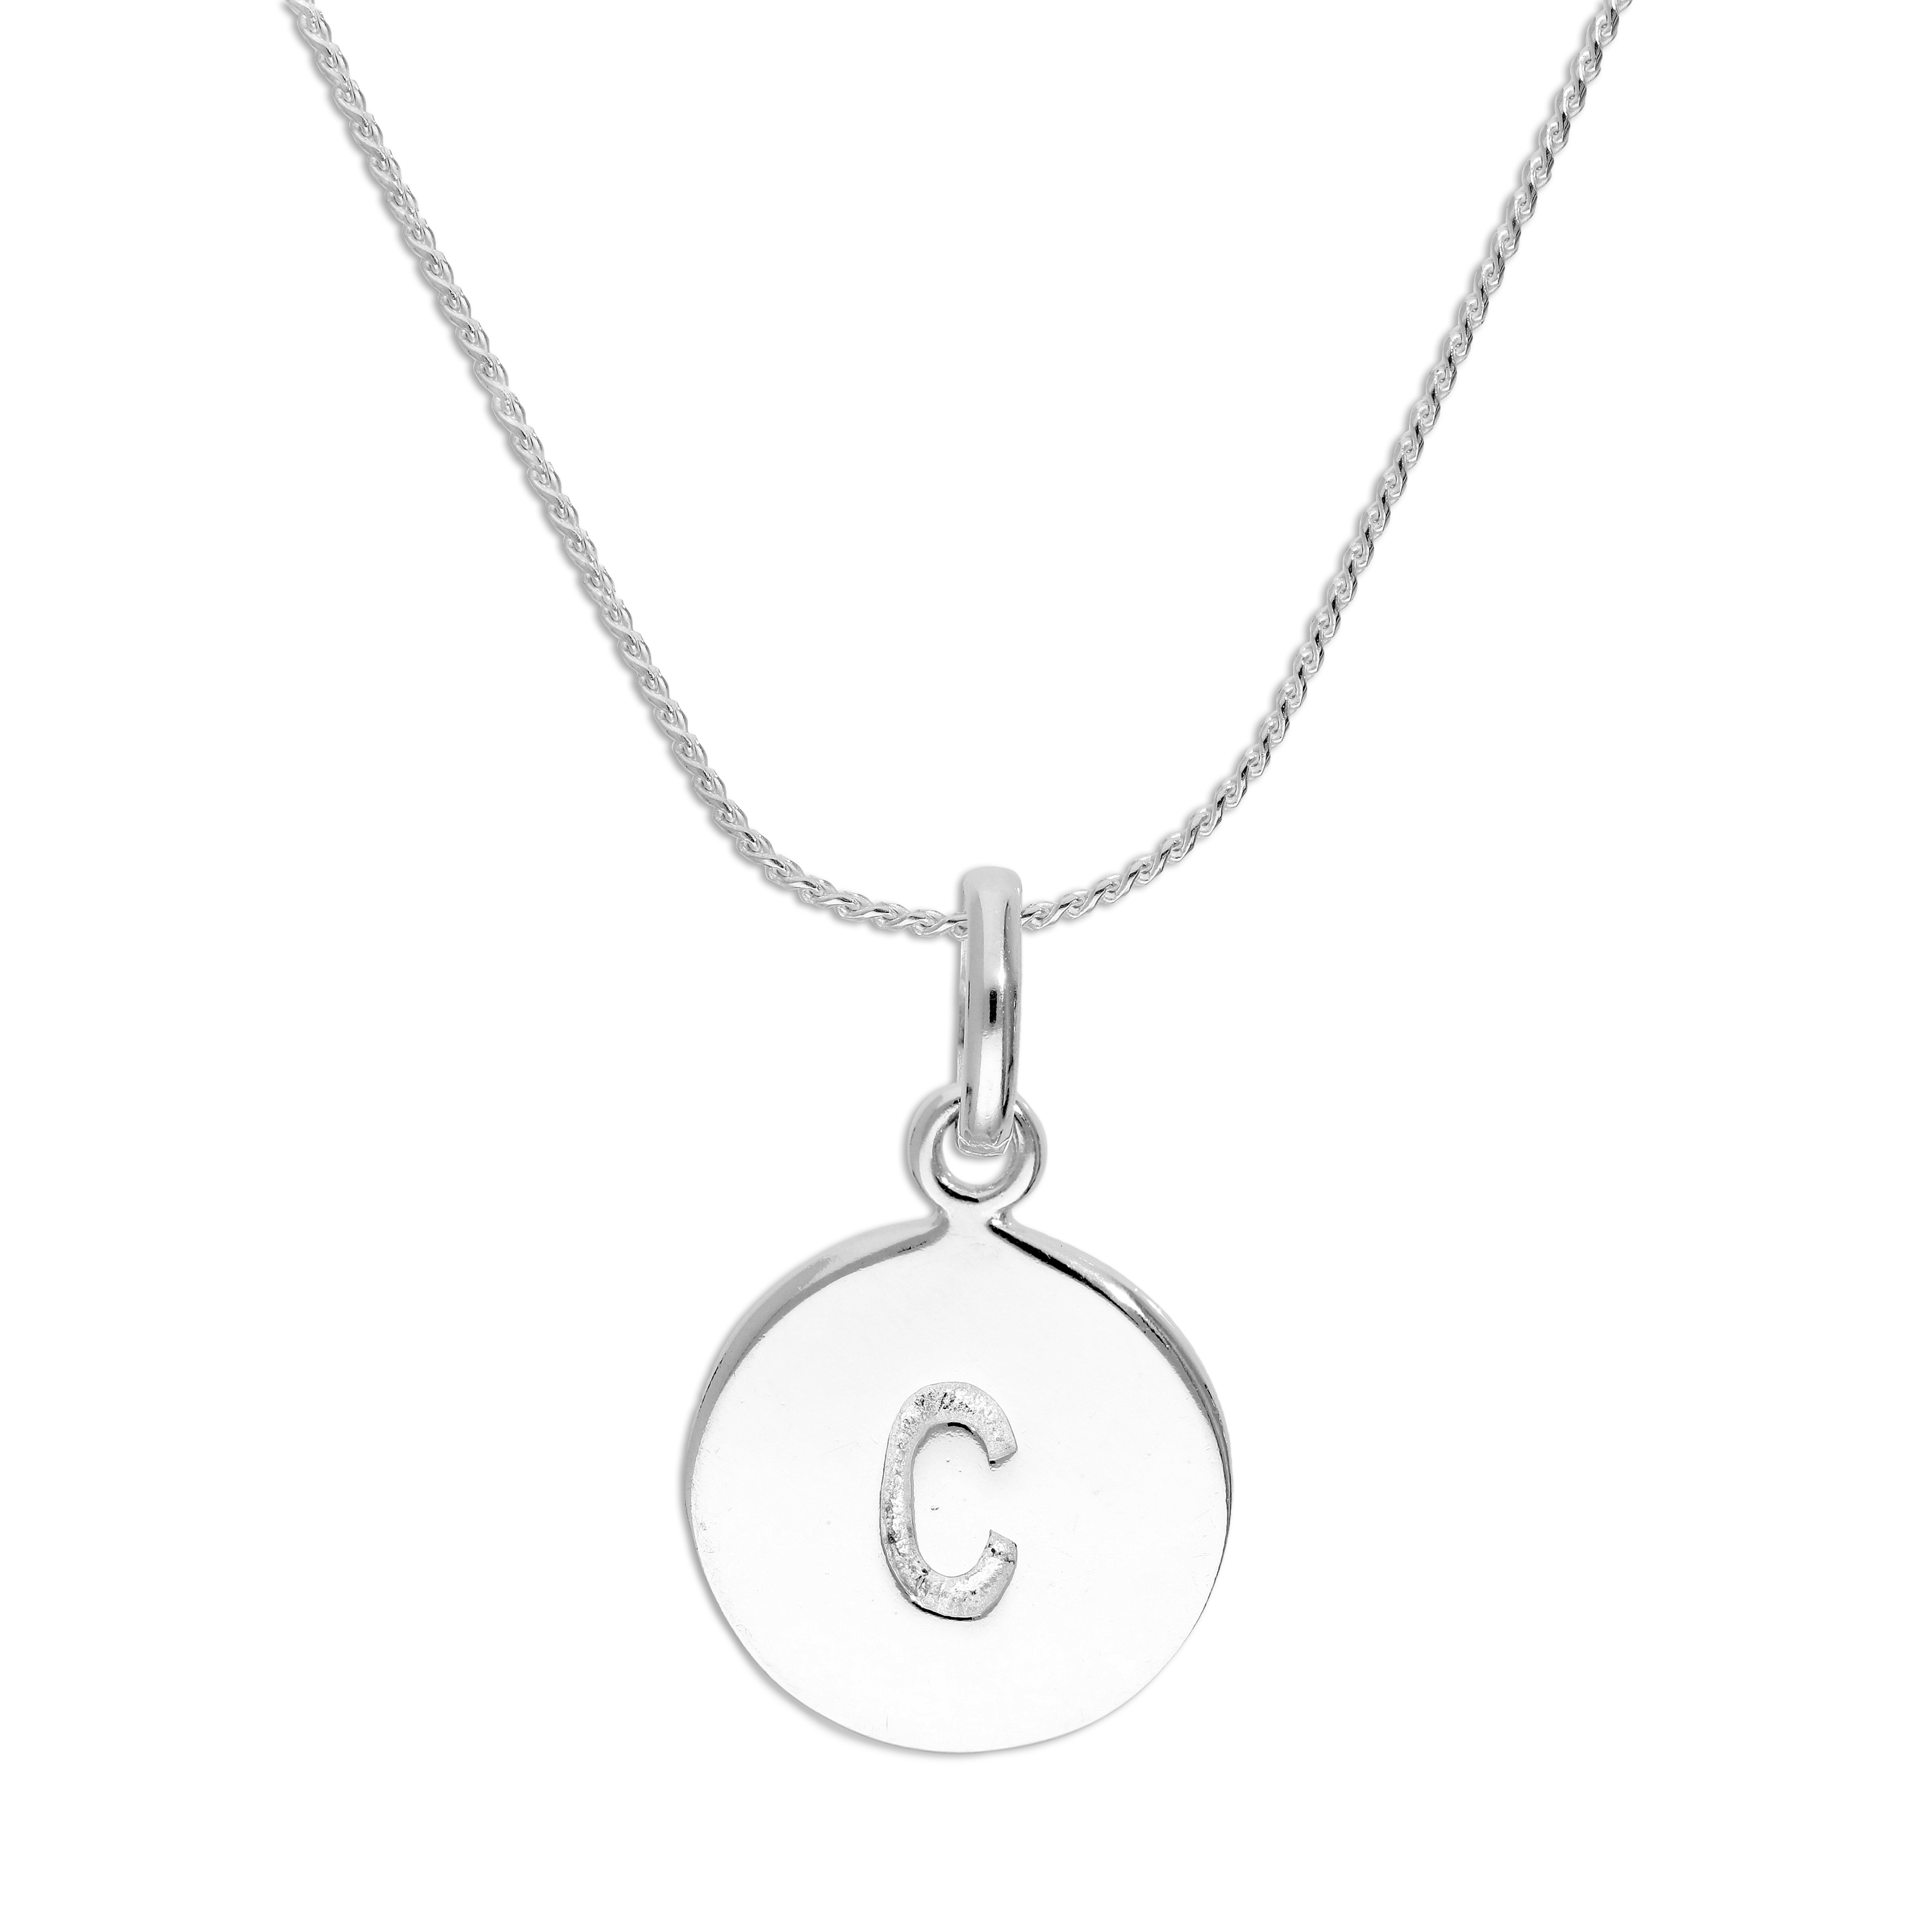 An image of Sterling Silver Initial Letter C Necklace 22 Inches Blue